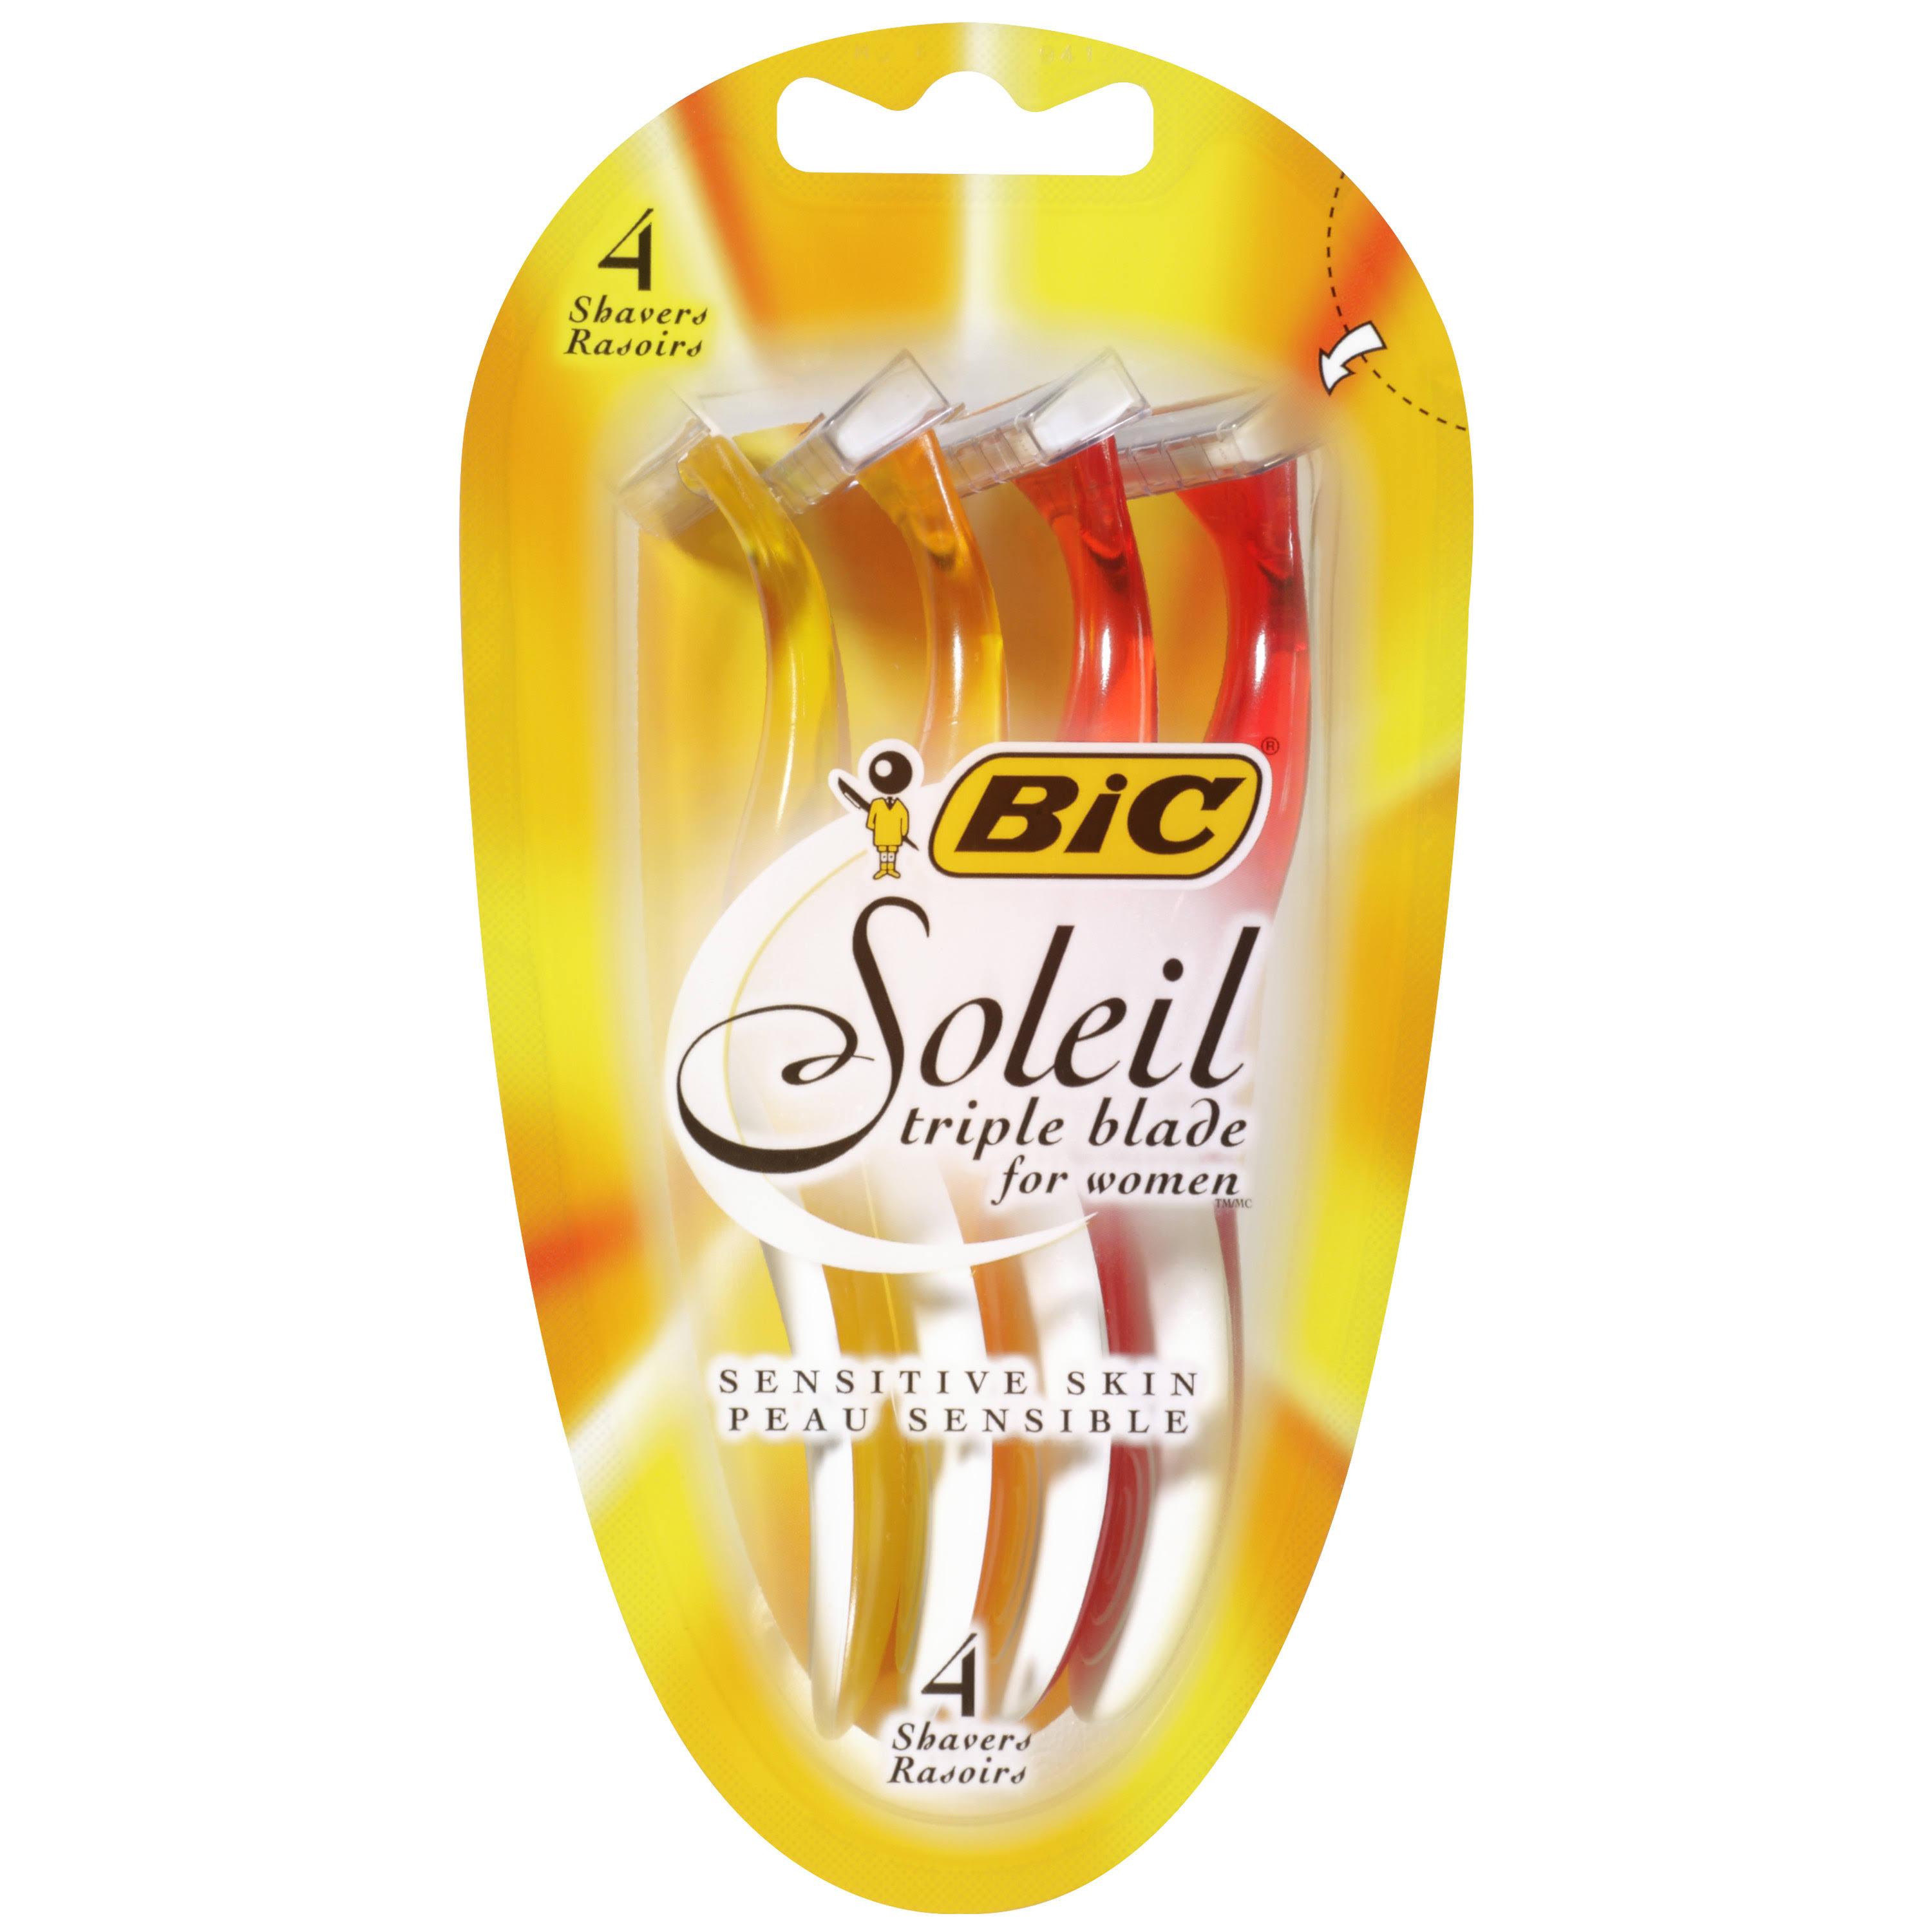 Bic Soleil 3 Blades Razor - 4ct, Disposable